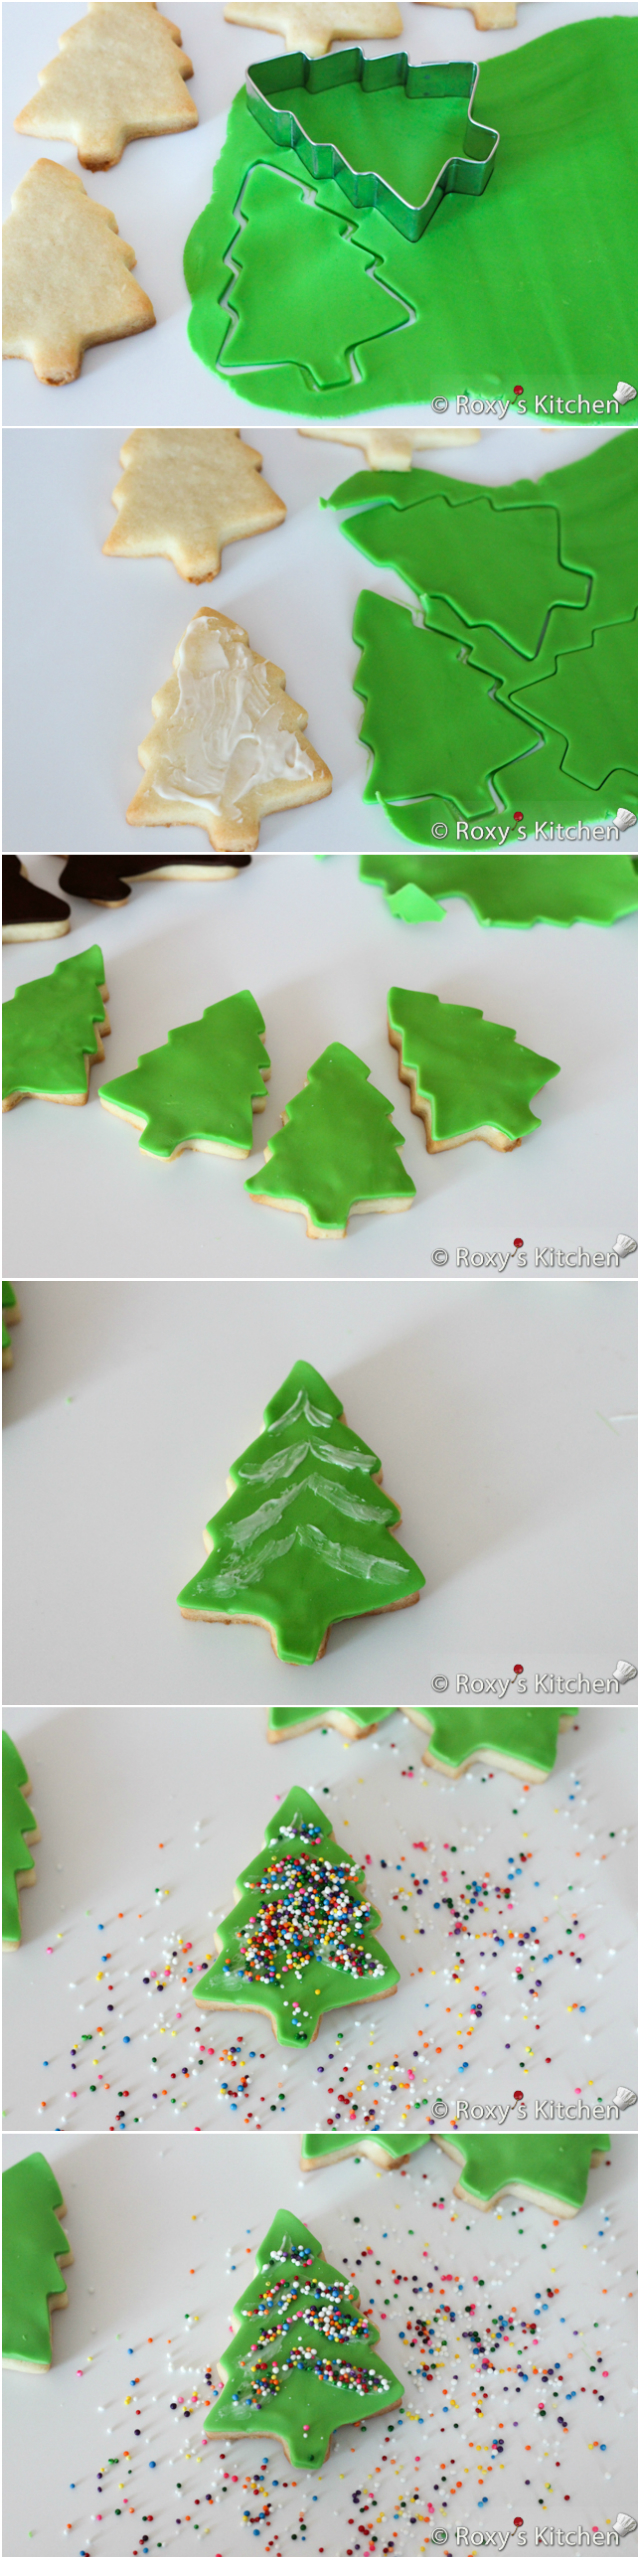 Christmas Tree Cookies --- Christmas Sugar Cookies Covered with Modeling Chocolate - HO HO HO, snowmen, reindeer, Christmas trees, stockings & presents | Roxy's Kitchen